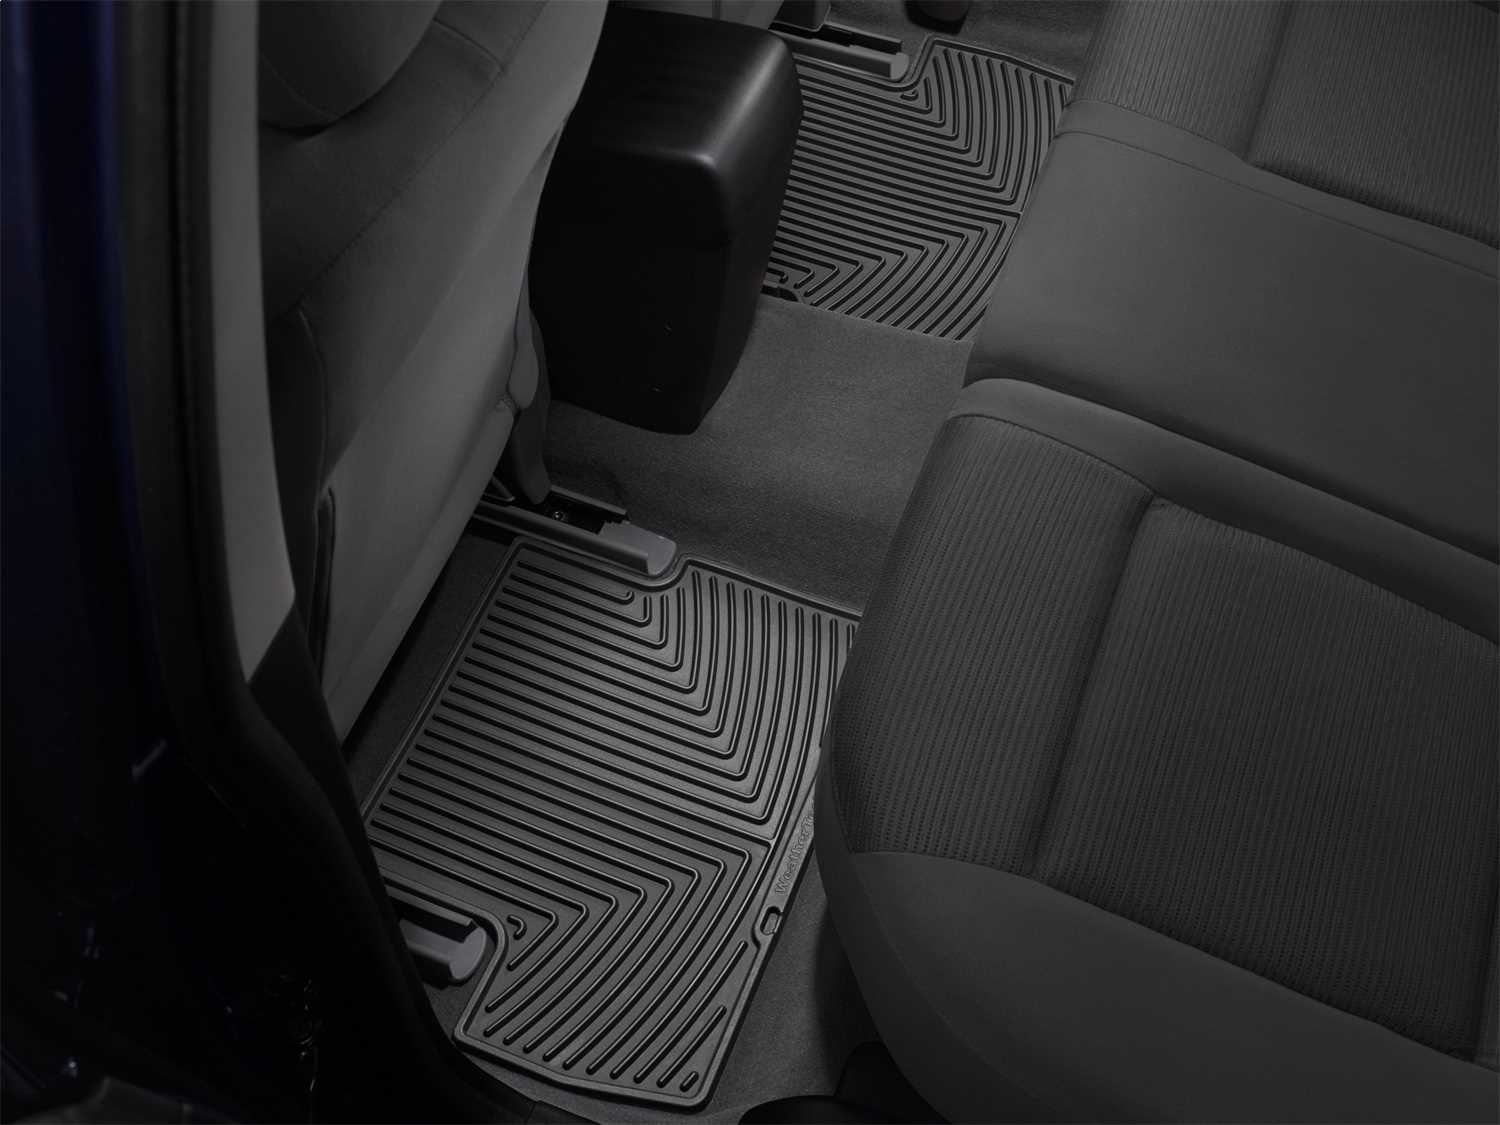 WTNB216217 WeatherTech All Weather Floor Mats